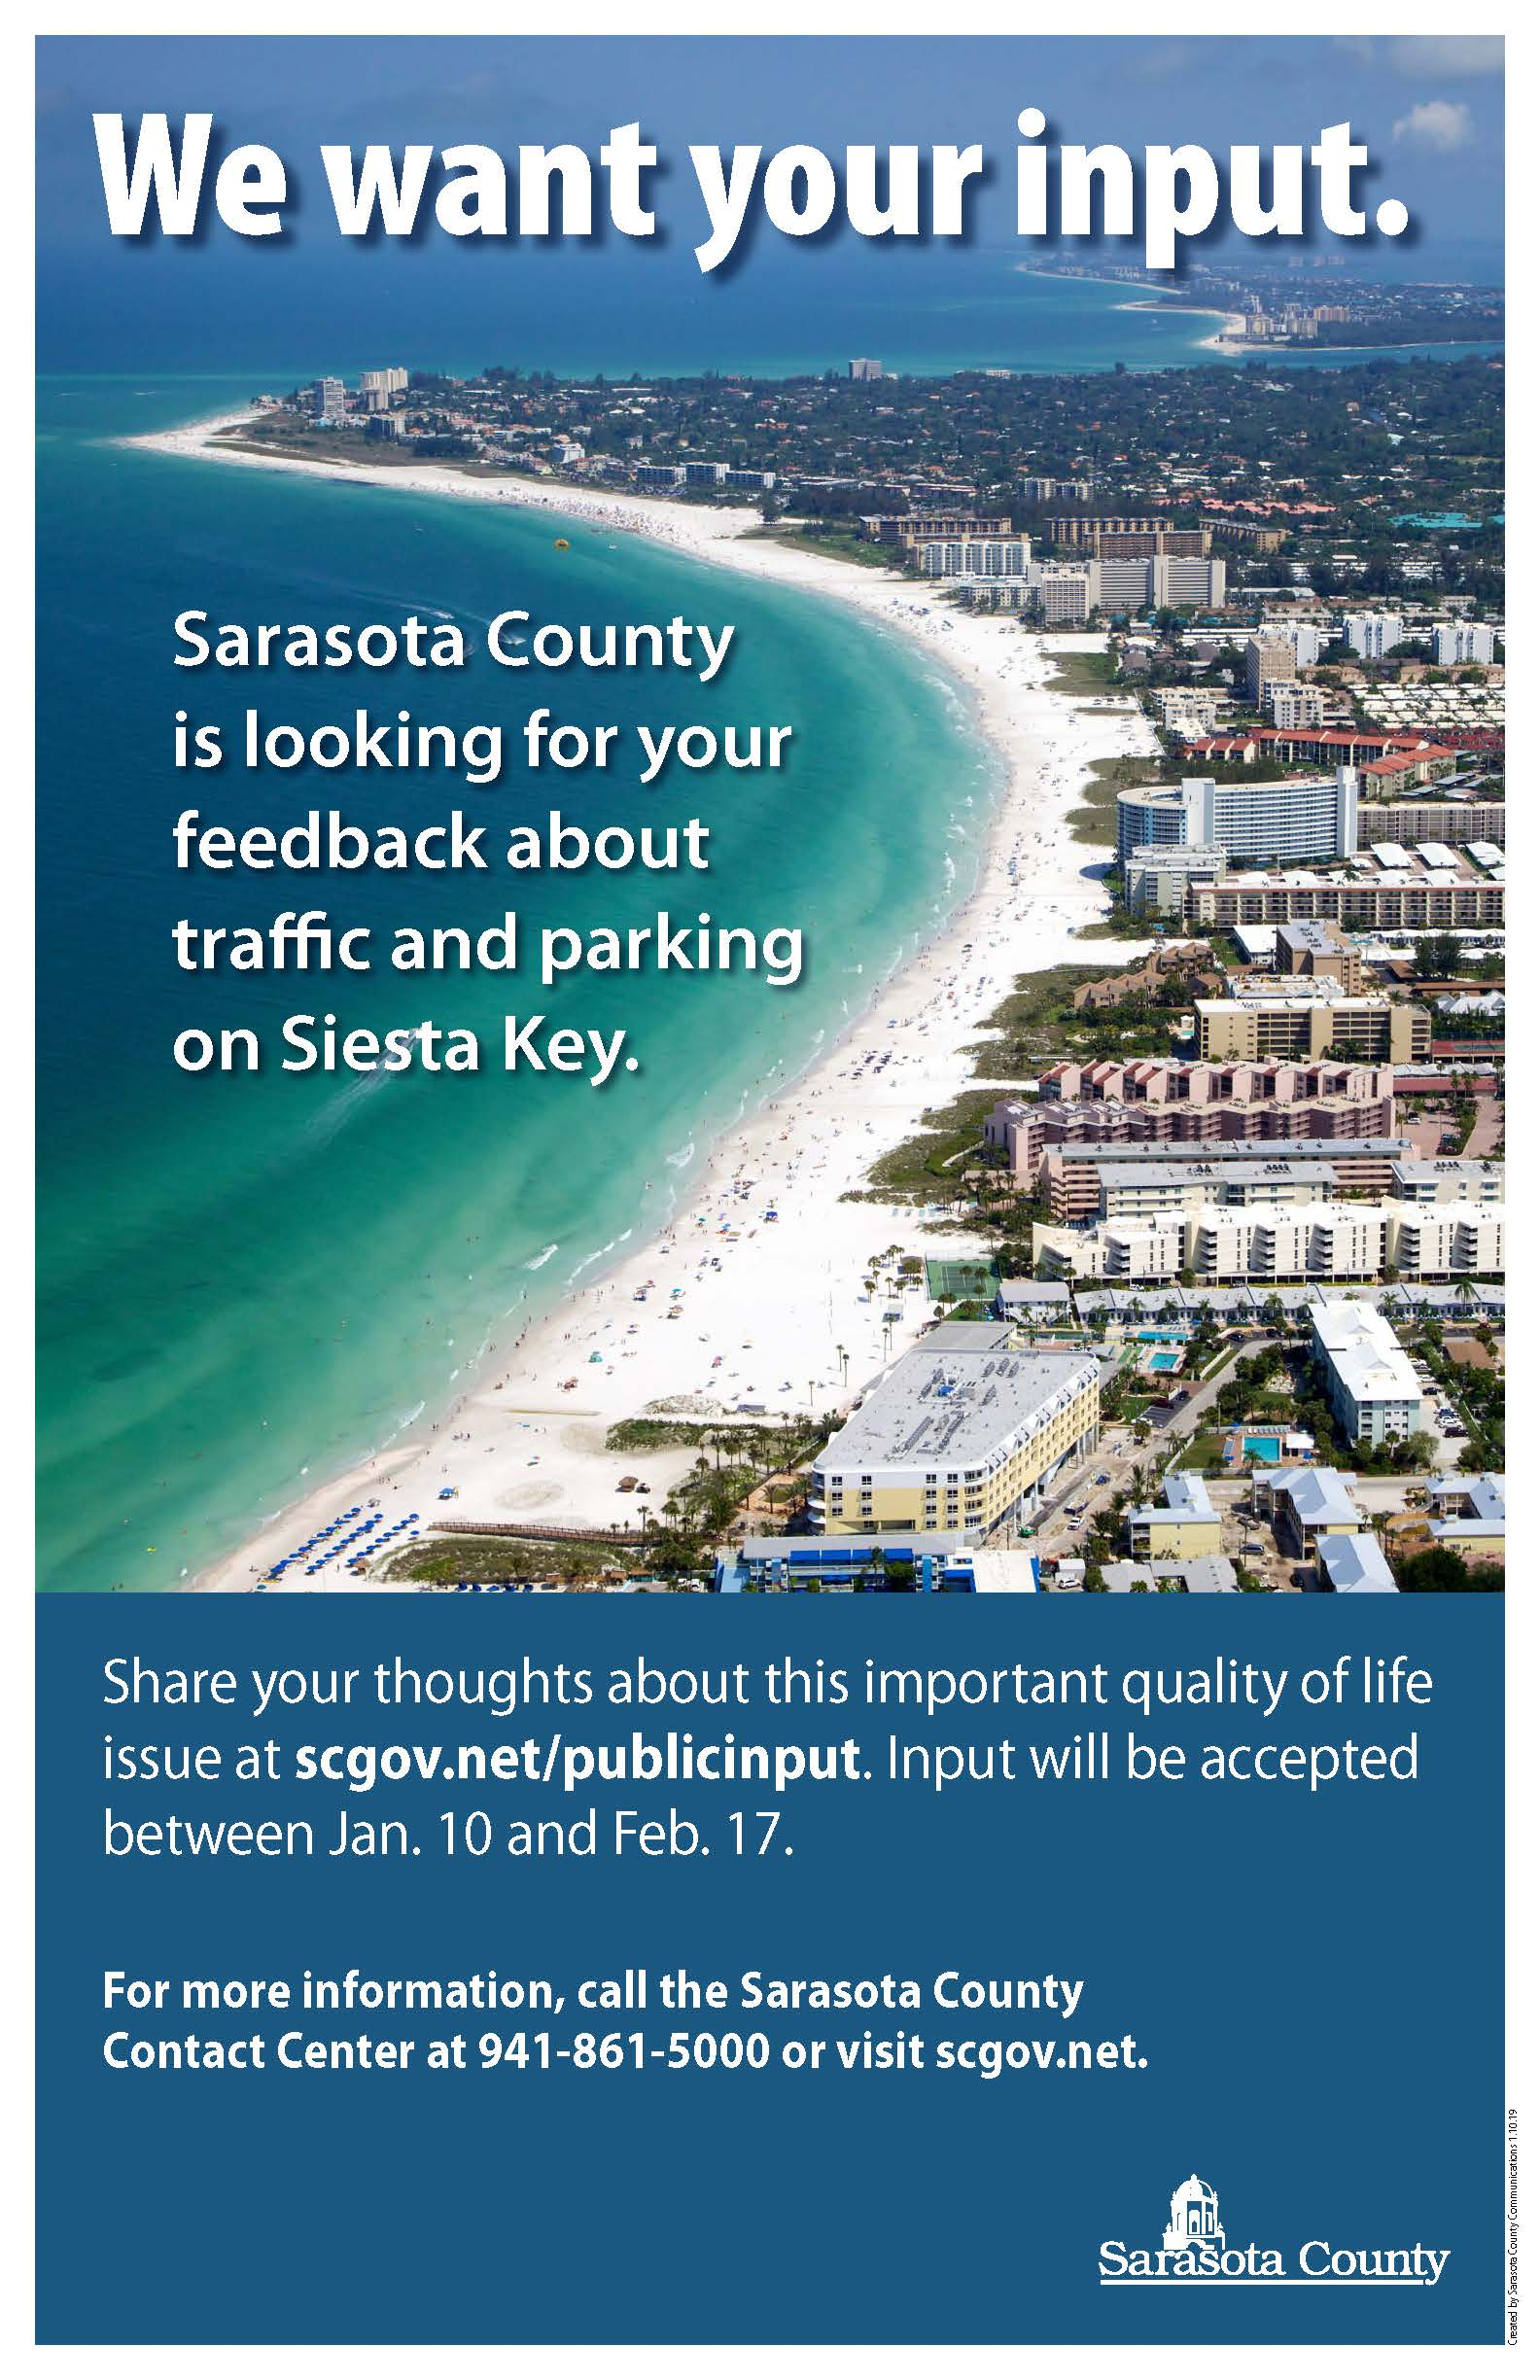 Siesta Key Traffic and Parking Public Input Form Flyer. Input Form online at scgov.net Jan. 10 through Feb. 17